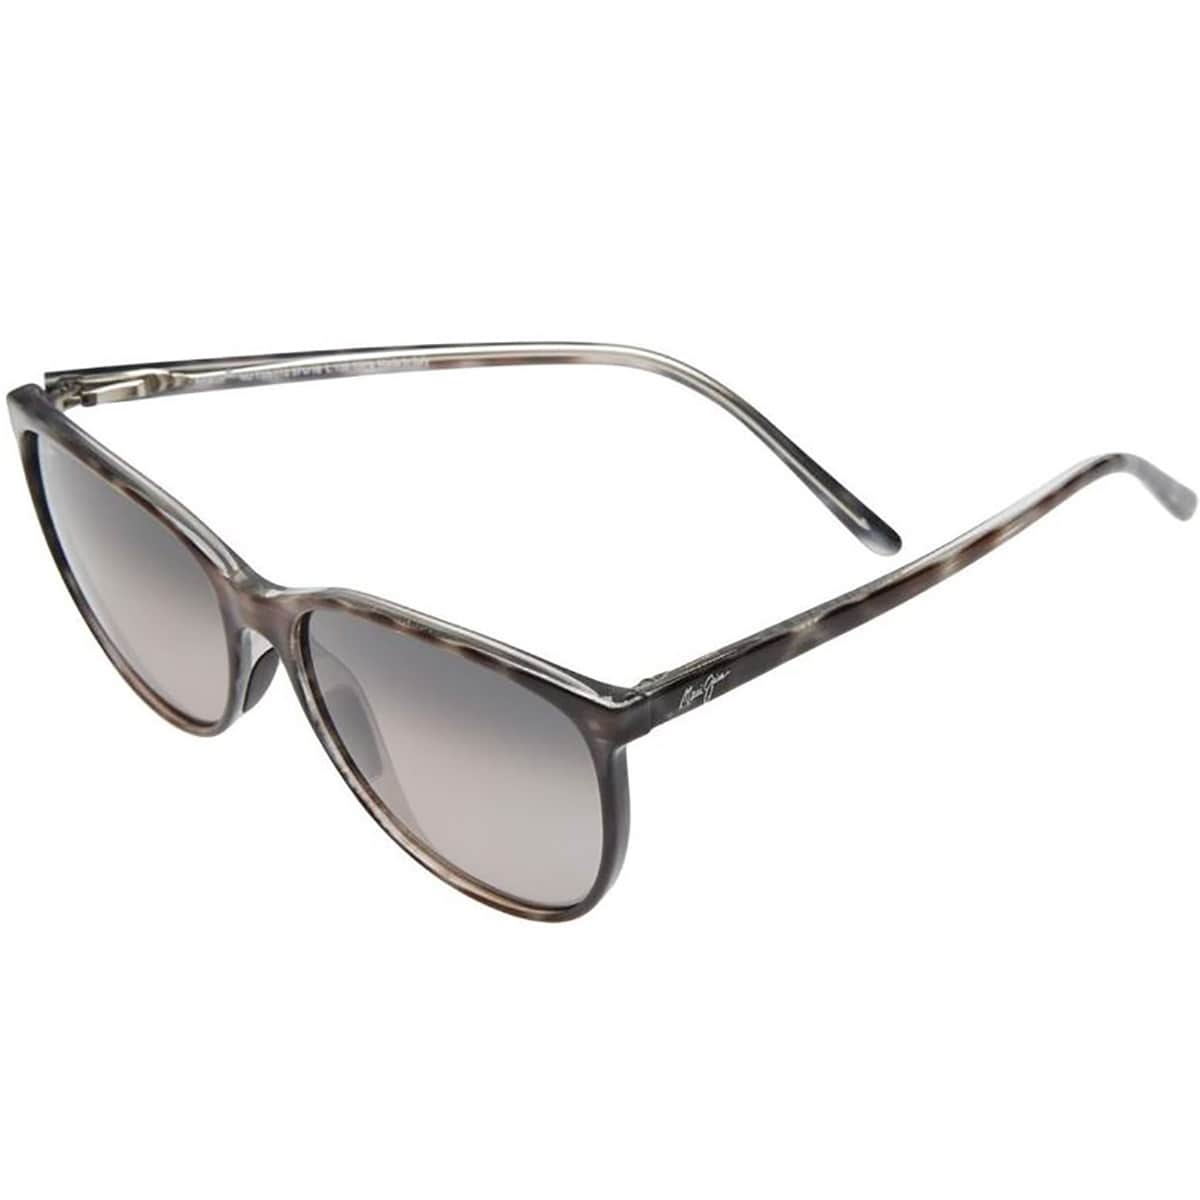 111581b3644 Shop Maui Jim Style 723 Ocean Polarized Cat Eye Sport Sunglasses - gray  tortoise stripe neutral gray - One size - Free Shipping Today - Overstock -  19967913